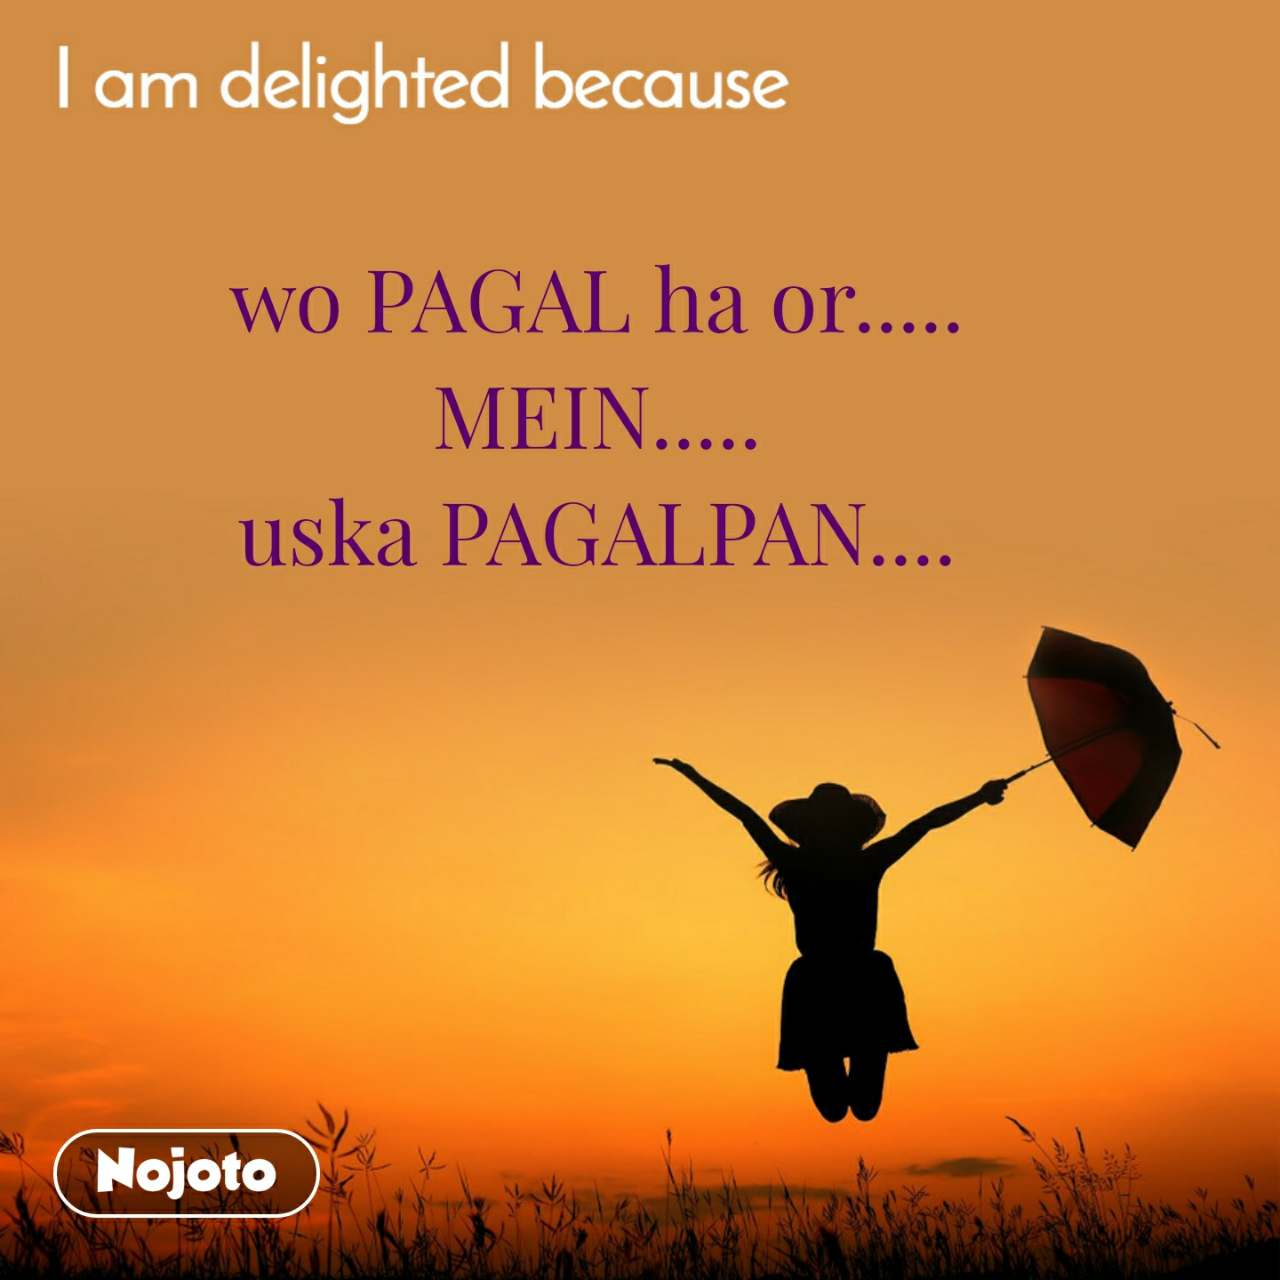 I am delighted because wo PAGAL ha or..... MEIN..... uska PAGALPAN....